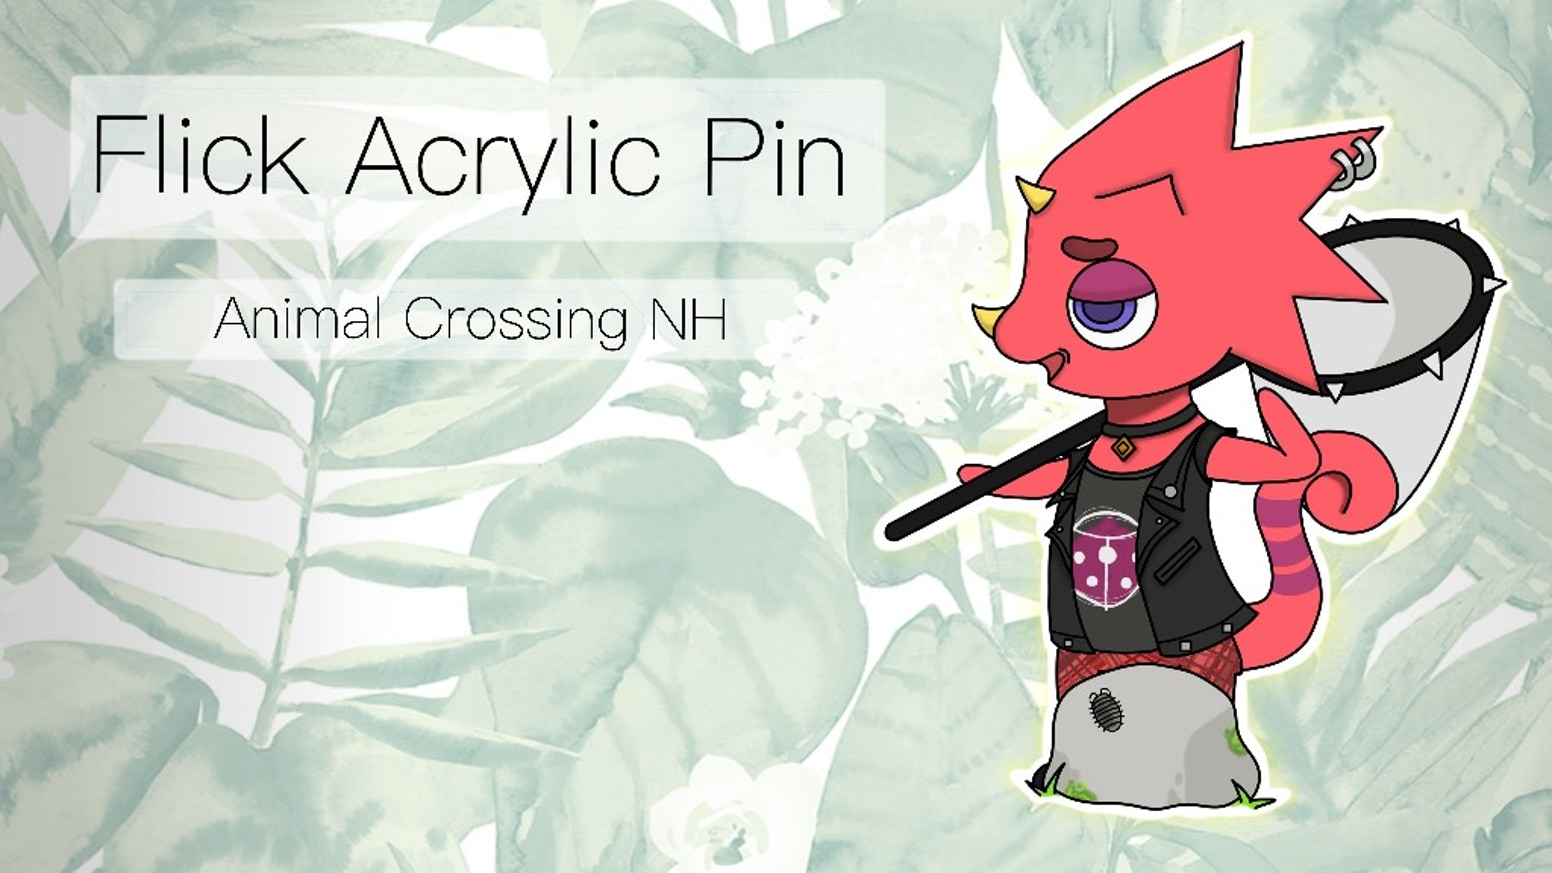 Flick Acrylic Pin By Spider Finder Kickstarter